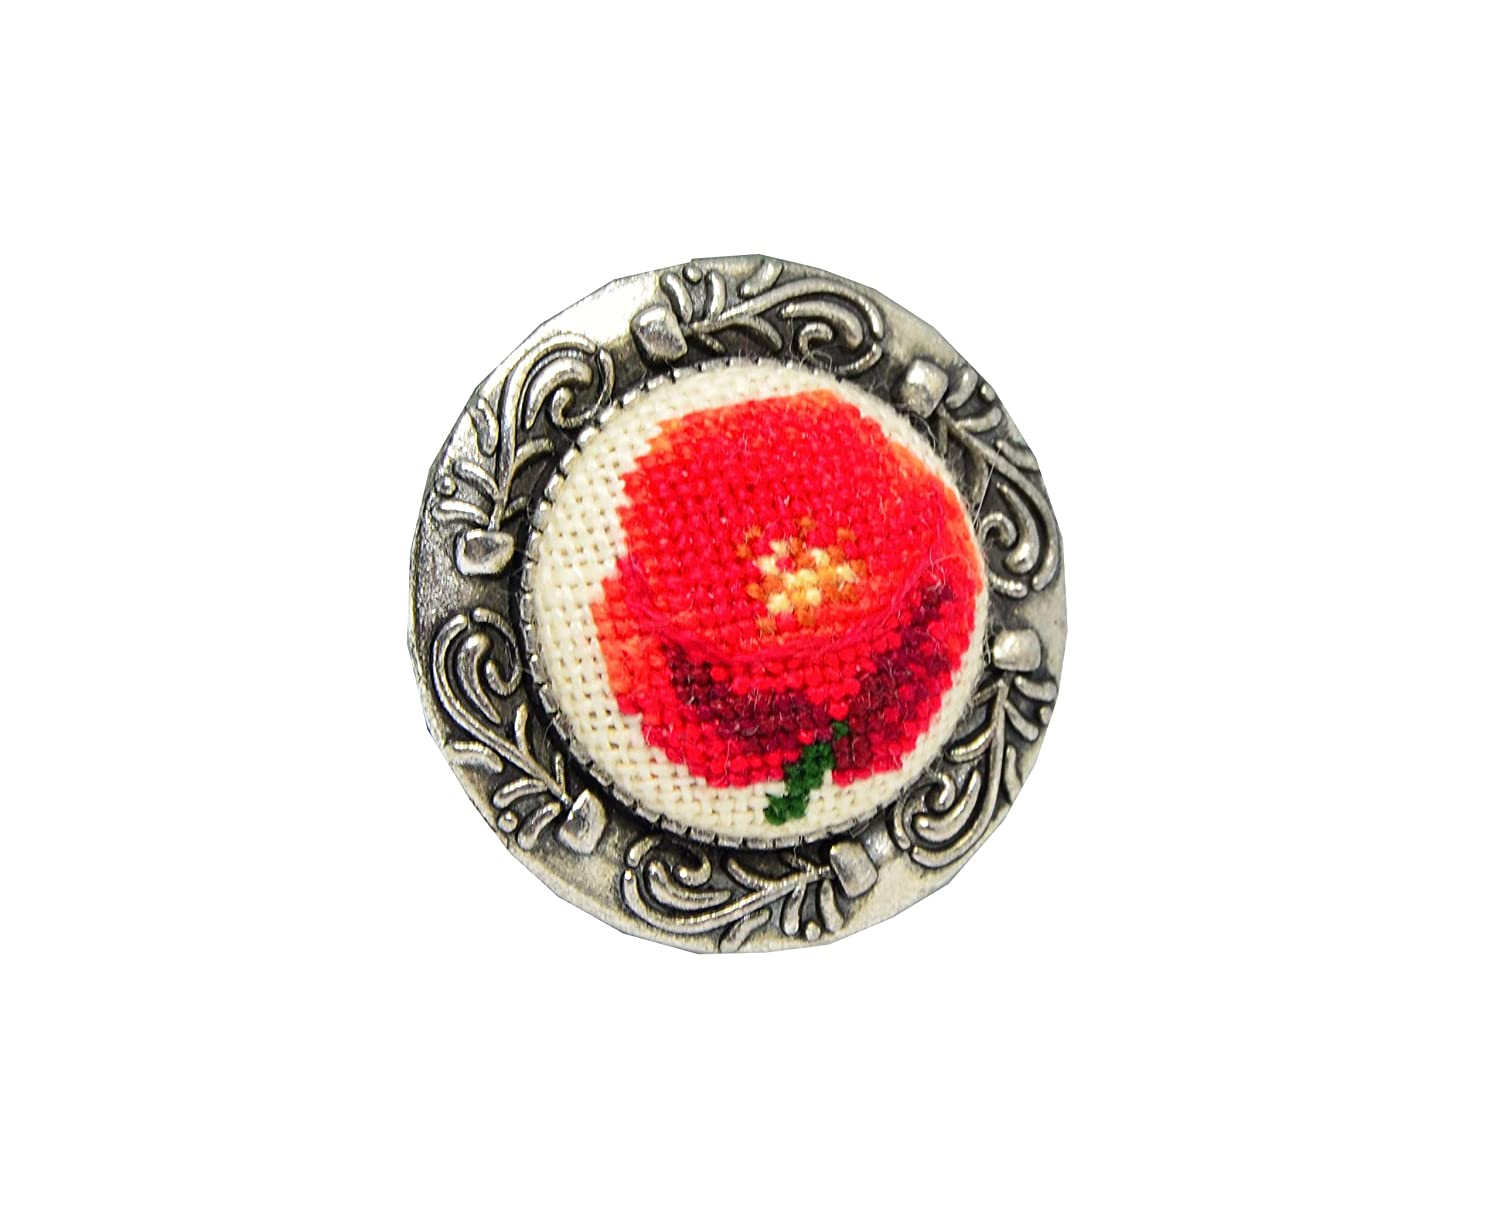 Handmade embroidered brooch 2021 new red poppy Trust with